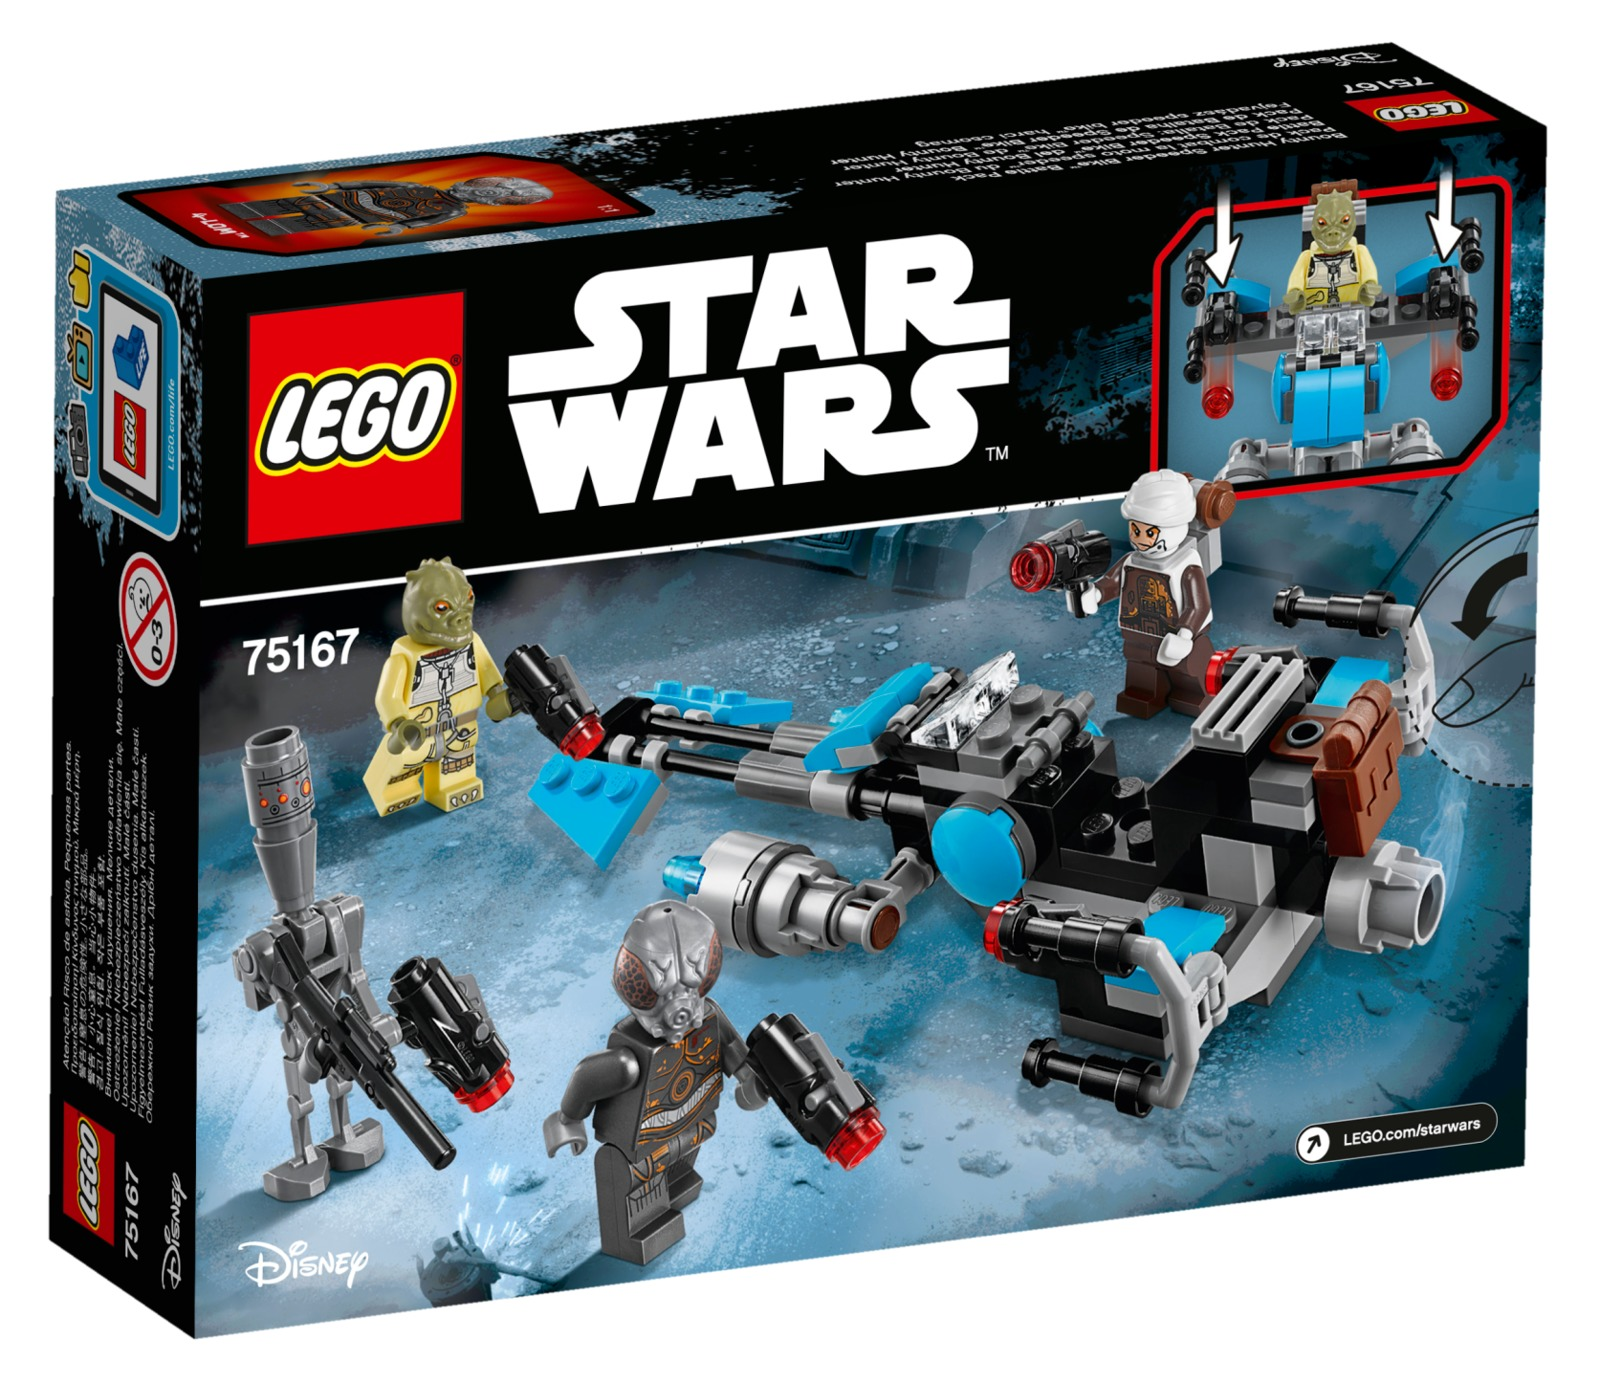 LEGO Star Wars - Bounty Hunter Speeder Bike Battle Pack (75167) image